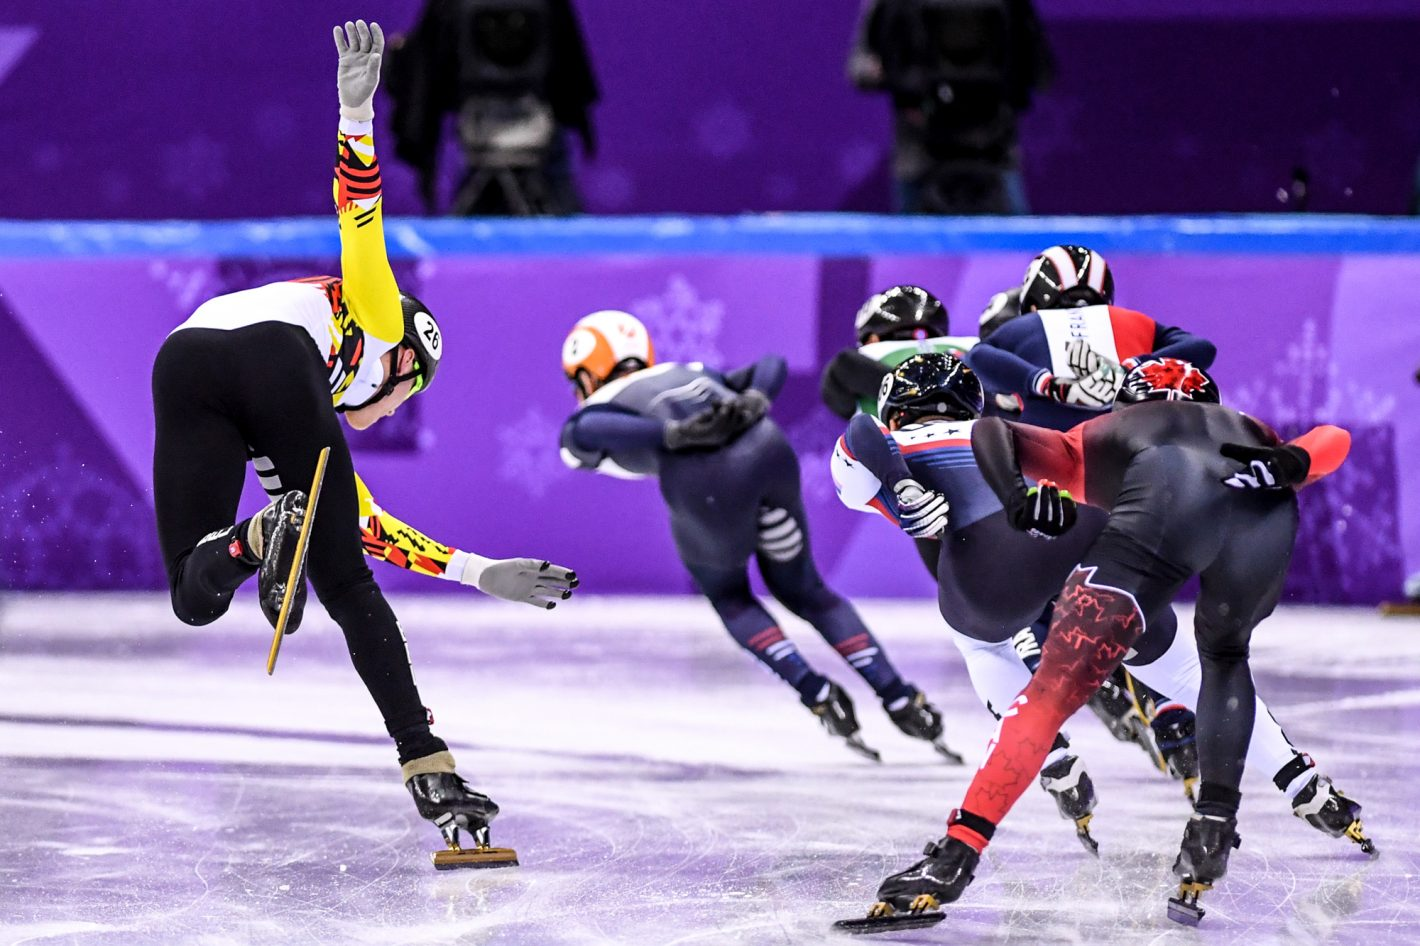 Jens Almey of Belgium loses balance in a corner while others skate smoothly during the 2nd group of Men's 1,500m Semifinal on February 10, 2018. Nikon D5 | AF-S NIKKOR 300mm f/2.8G ED VR II | ISO 6400 | 1/5000 s | f/2.8 Copyright: An Ling Jung / China Sports